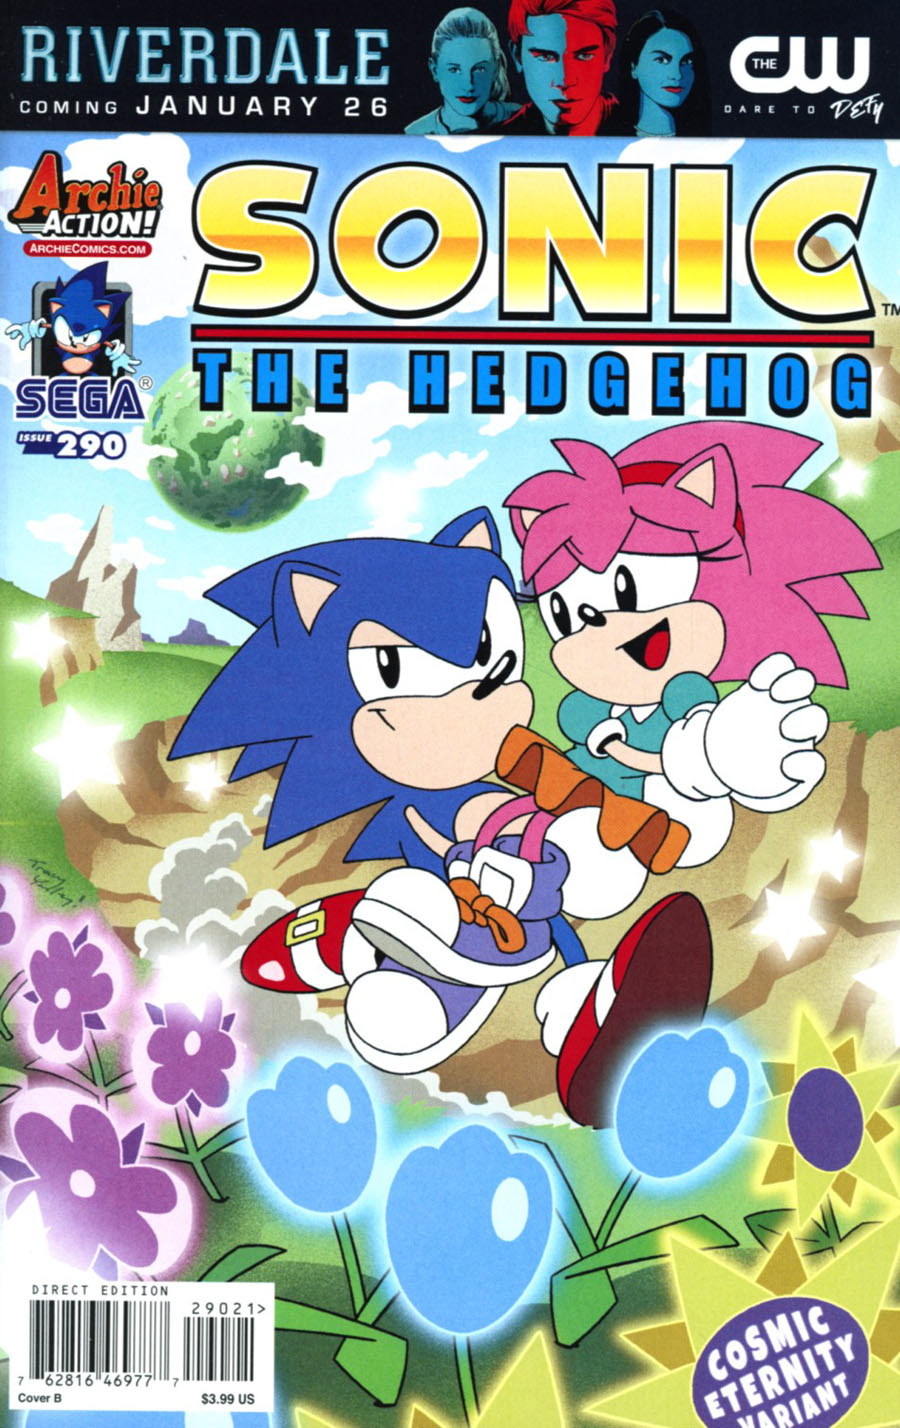 Sonic The Hedgehog Vol 2 290 Cover B Variant Tracy Yardley Cover Midtown Comics